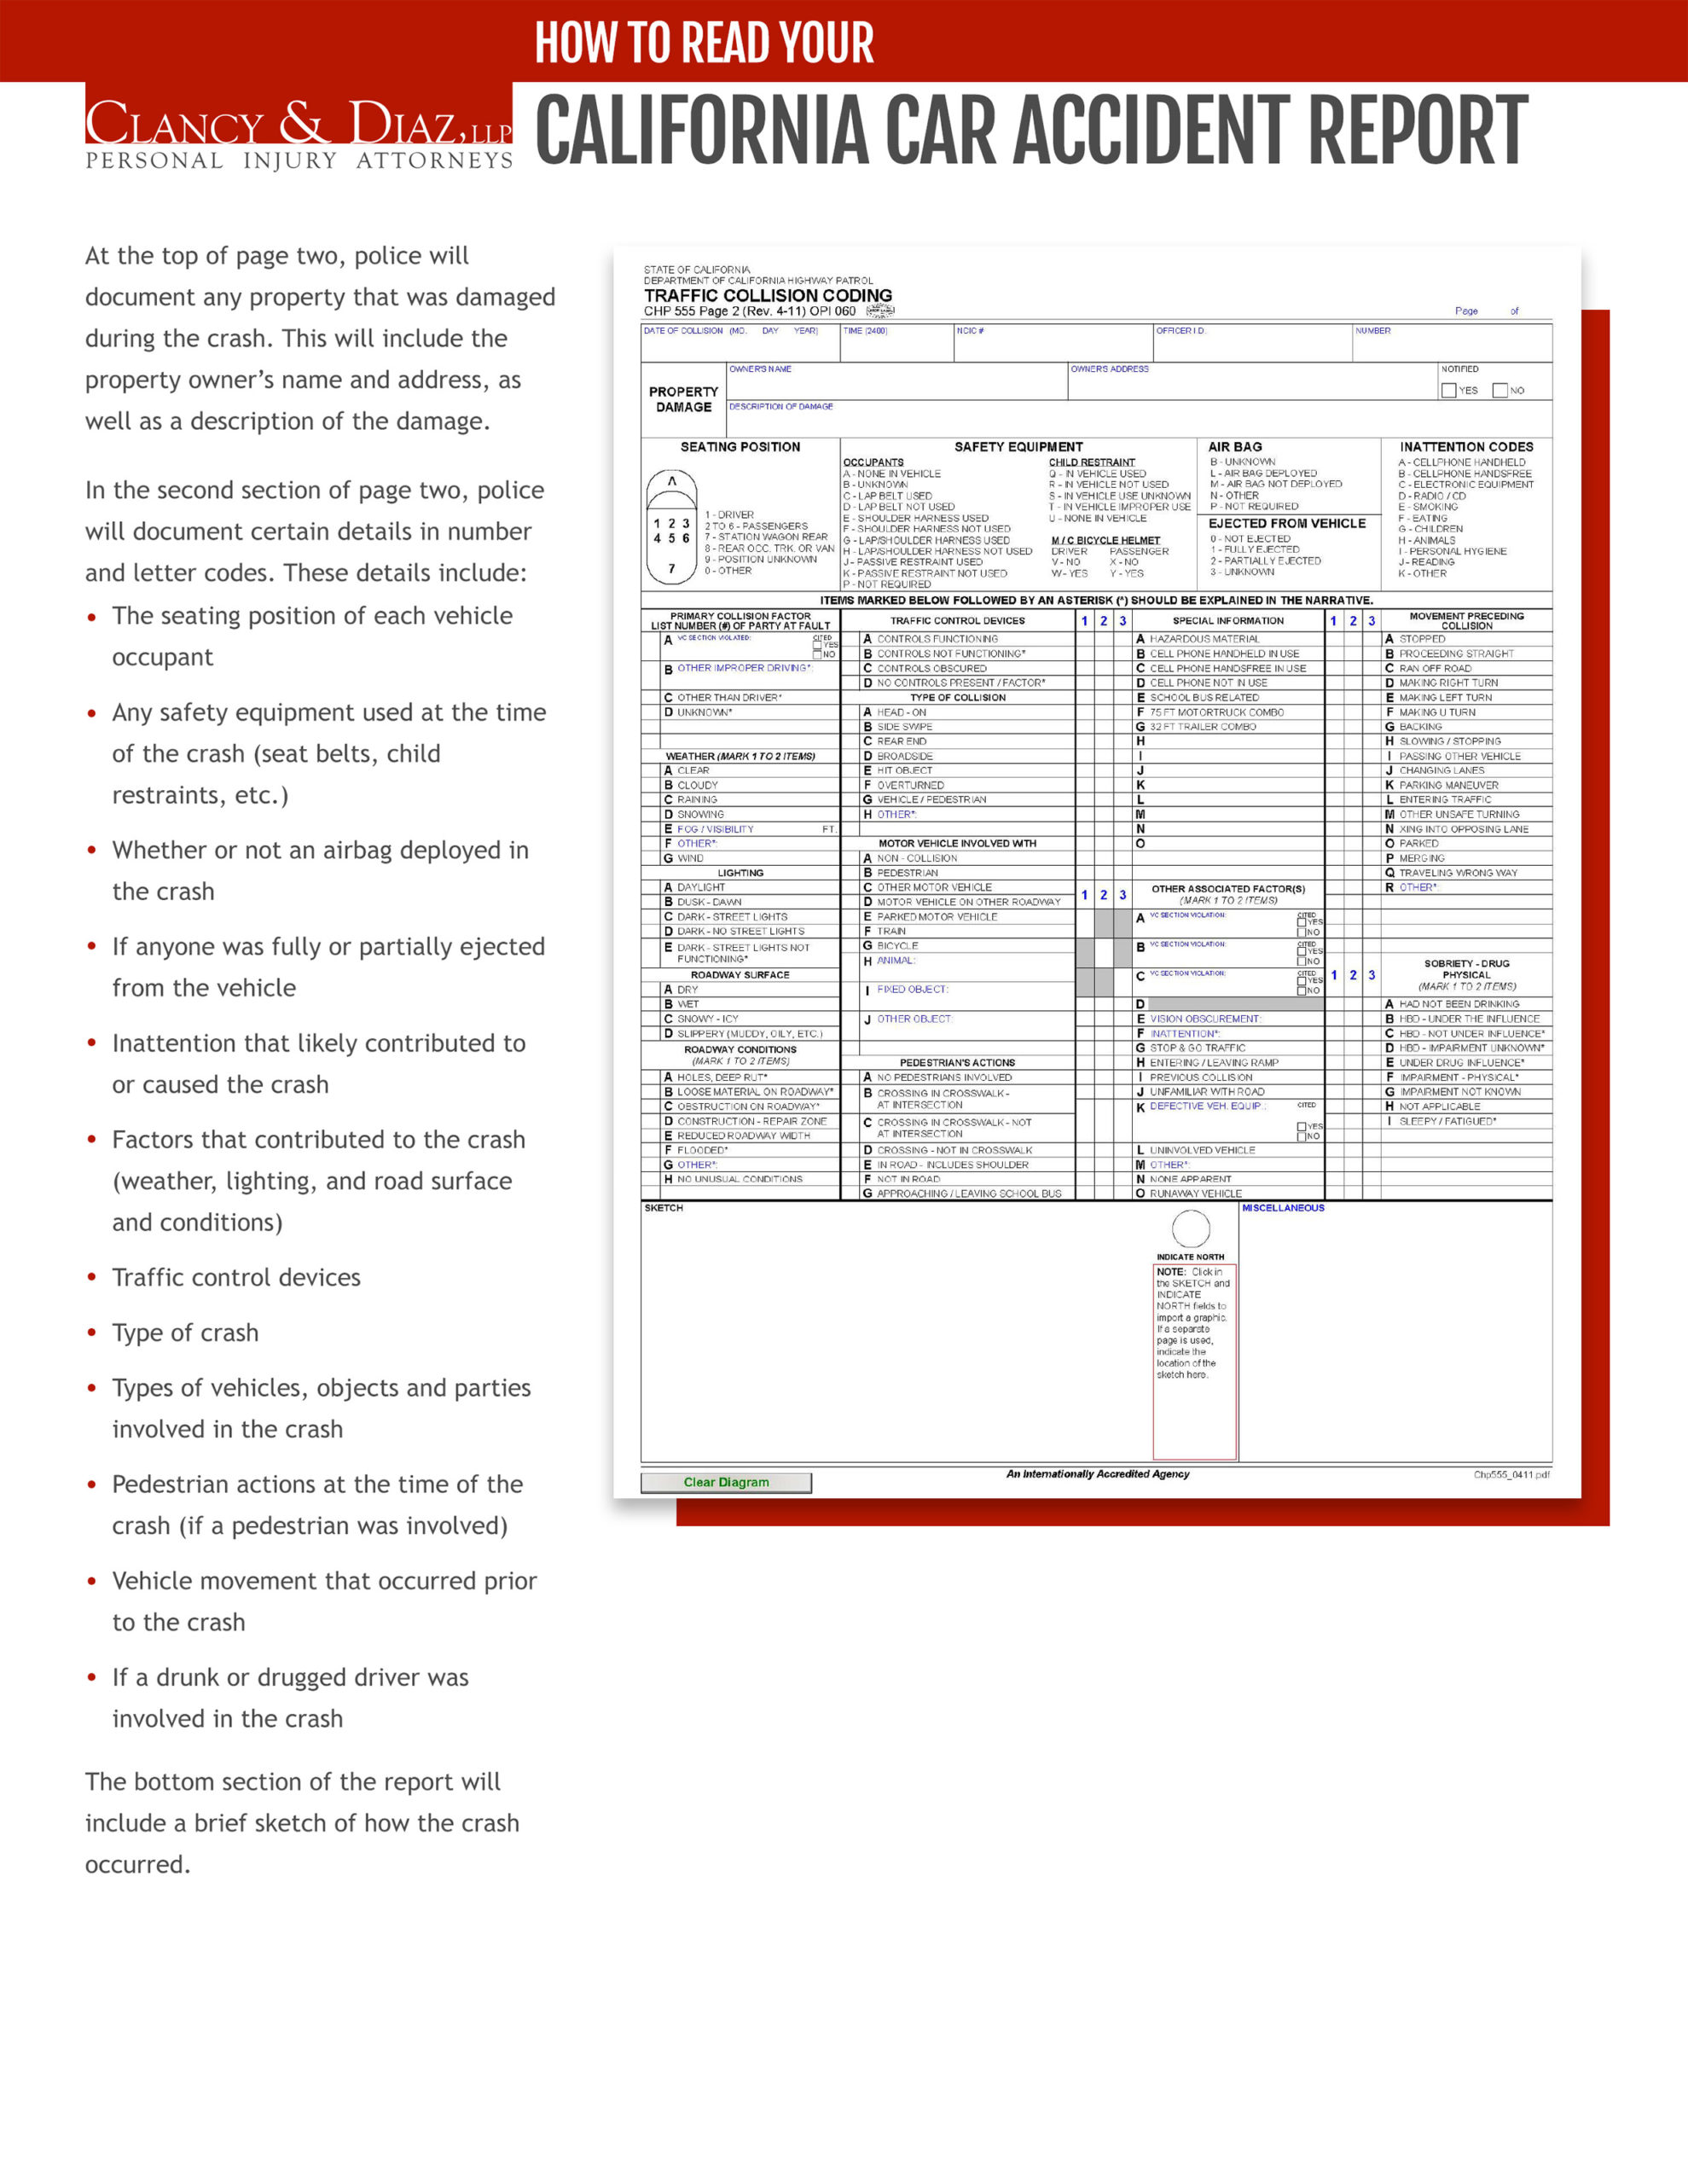 California Car Accident Report page 2